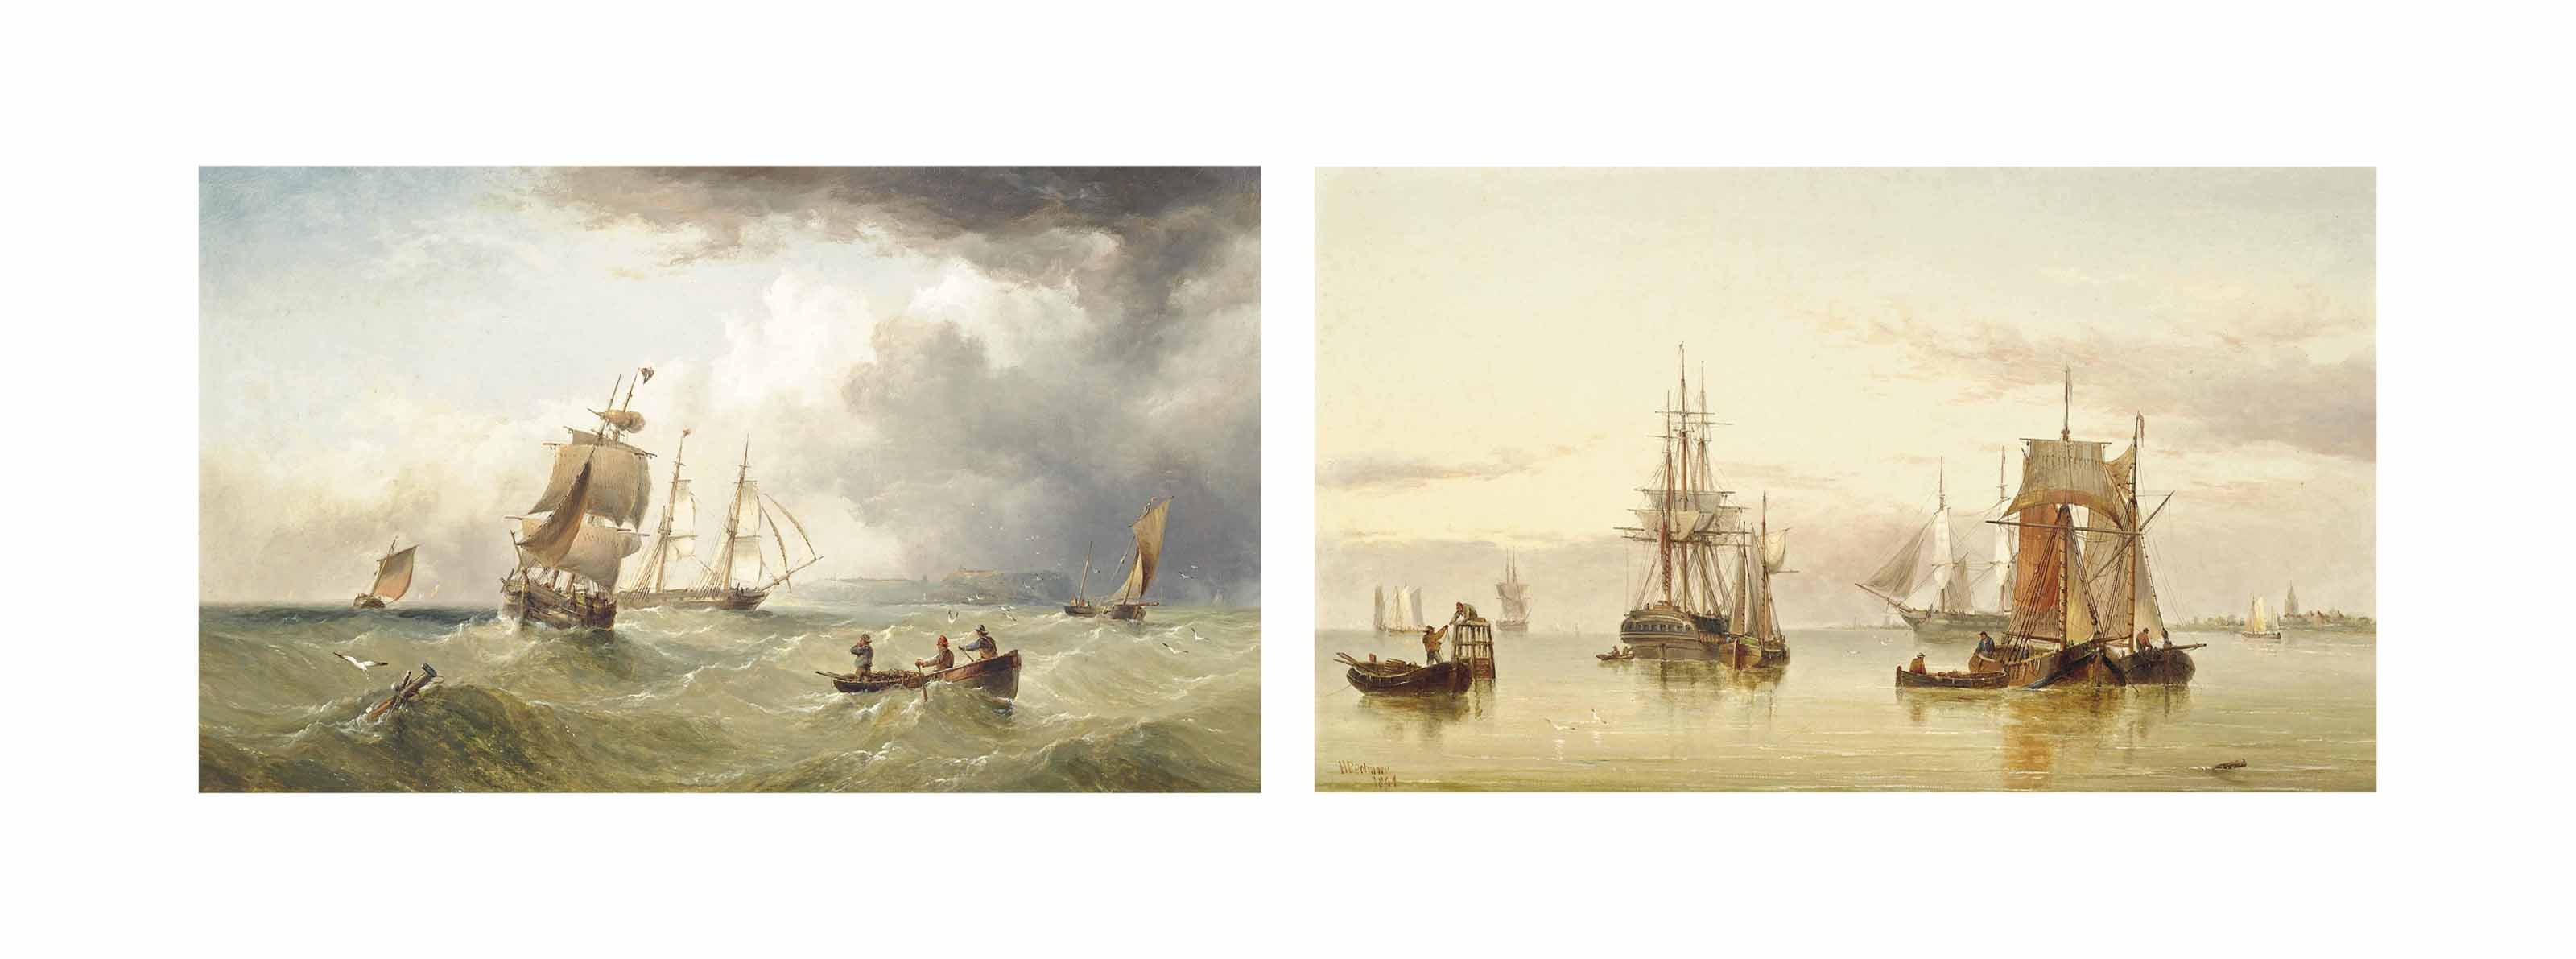 Merchant shipping in the Channel off Scarborough; and A calm day on the Humber estuary (both illustrated)